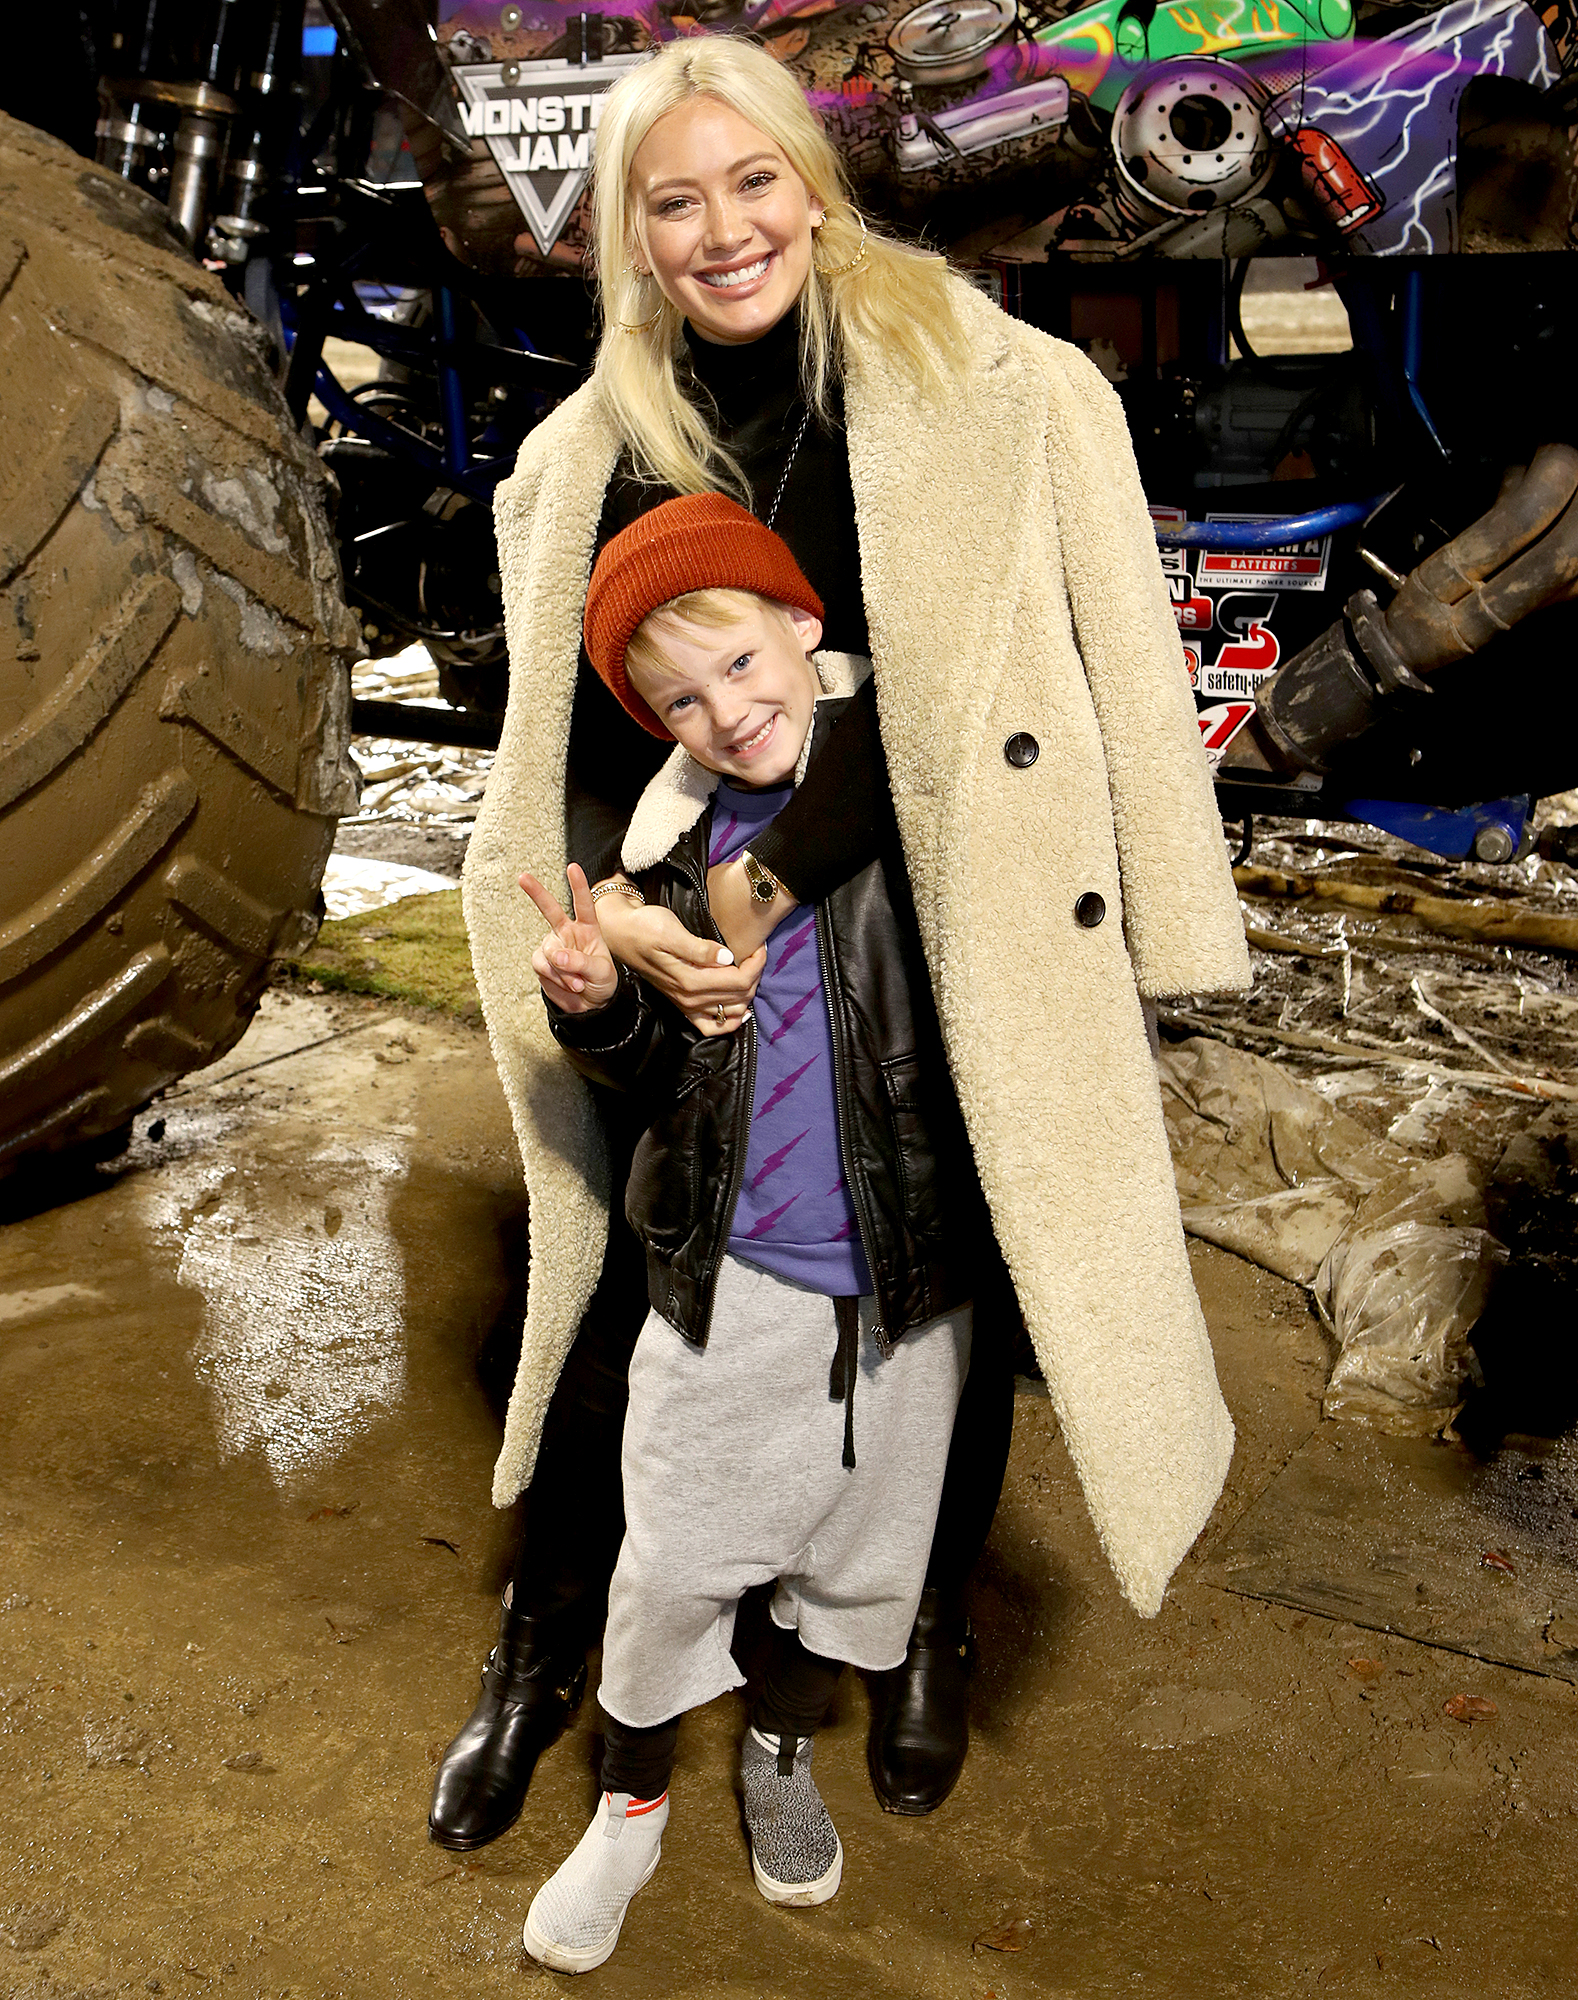 Hilary-Duff-and-son-luca.jpg